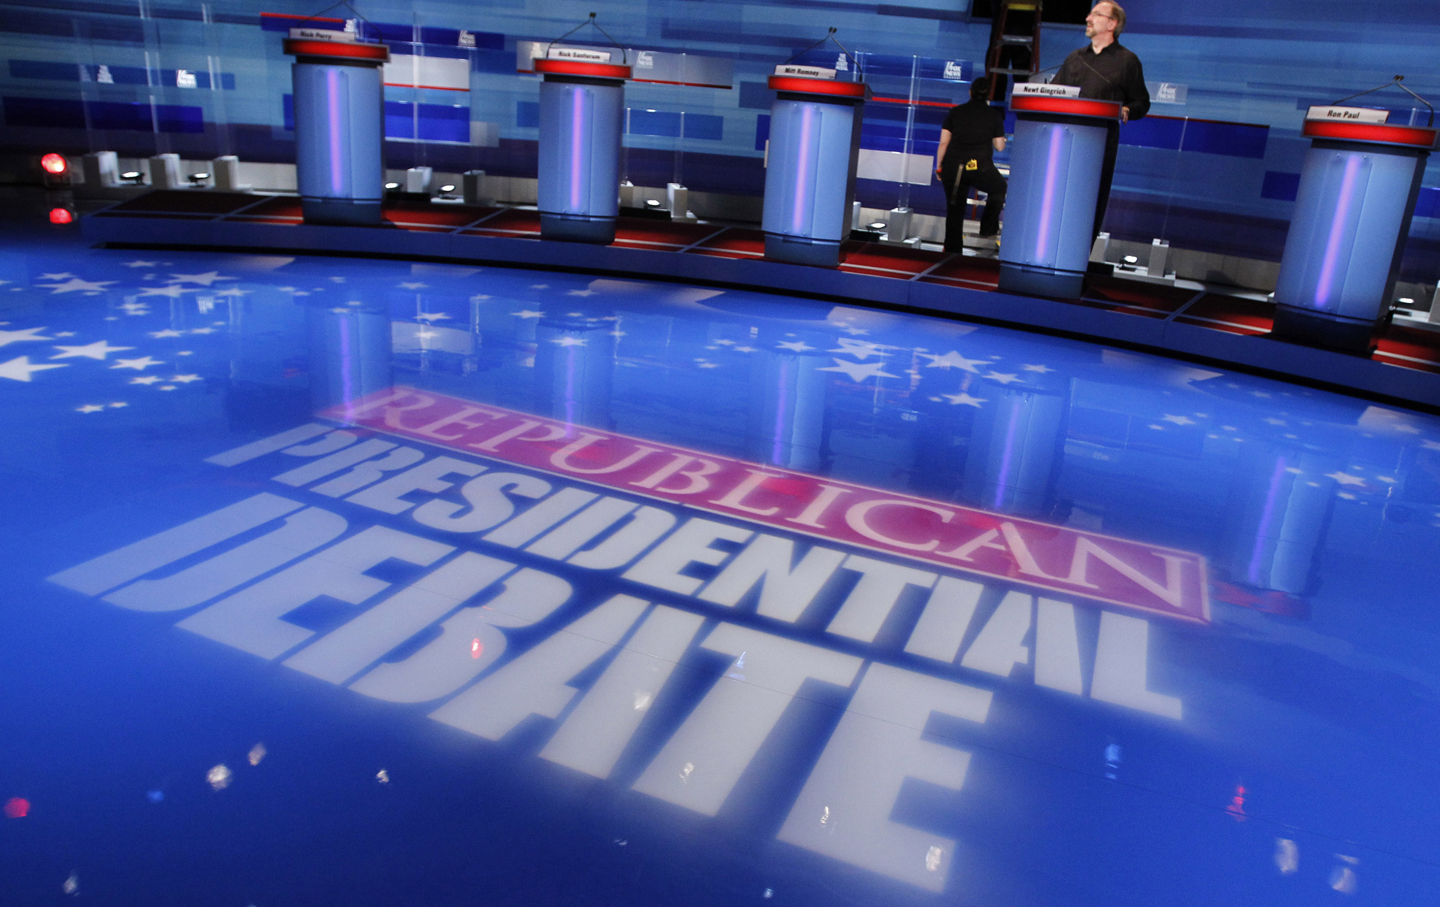 GOP_republican_debate_empty_stage_rtr_img.jpg